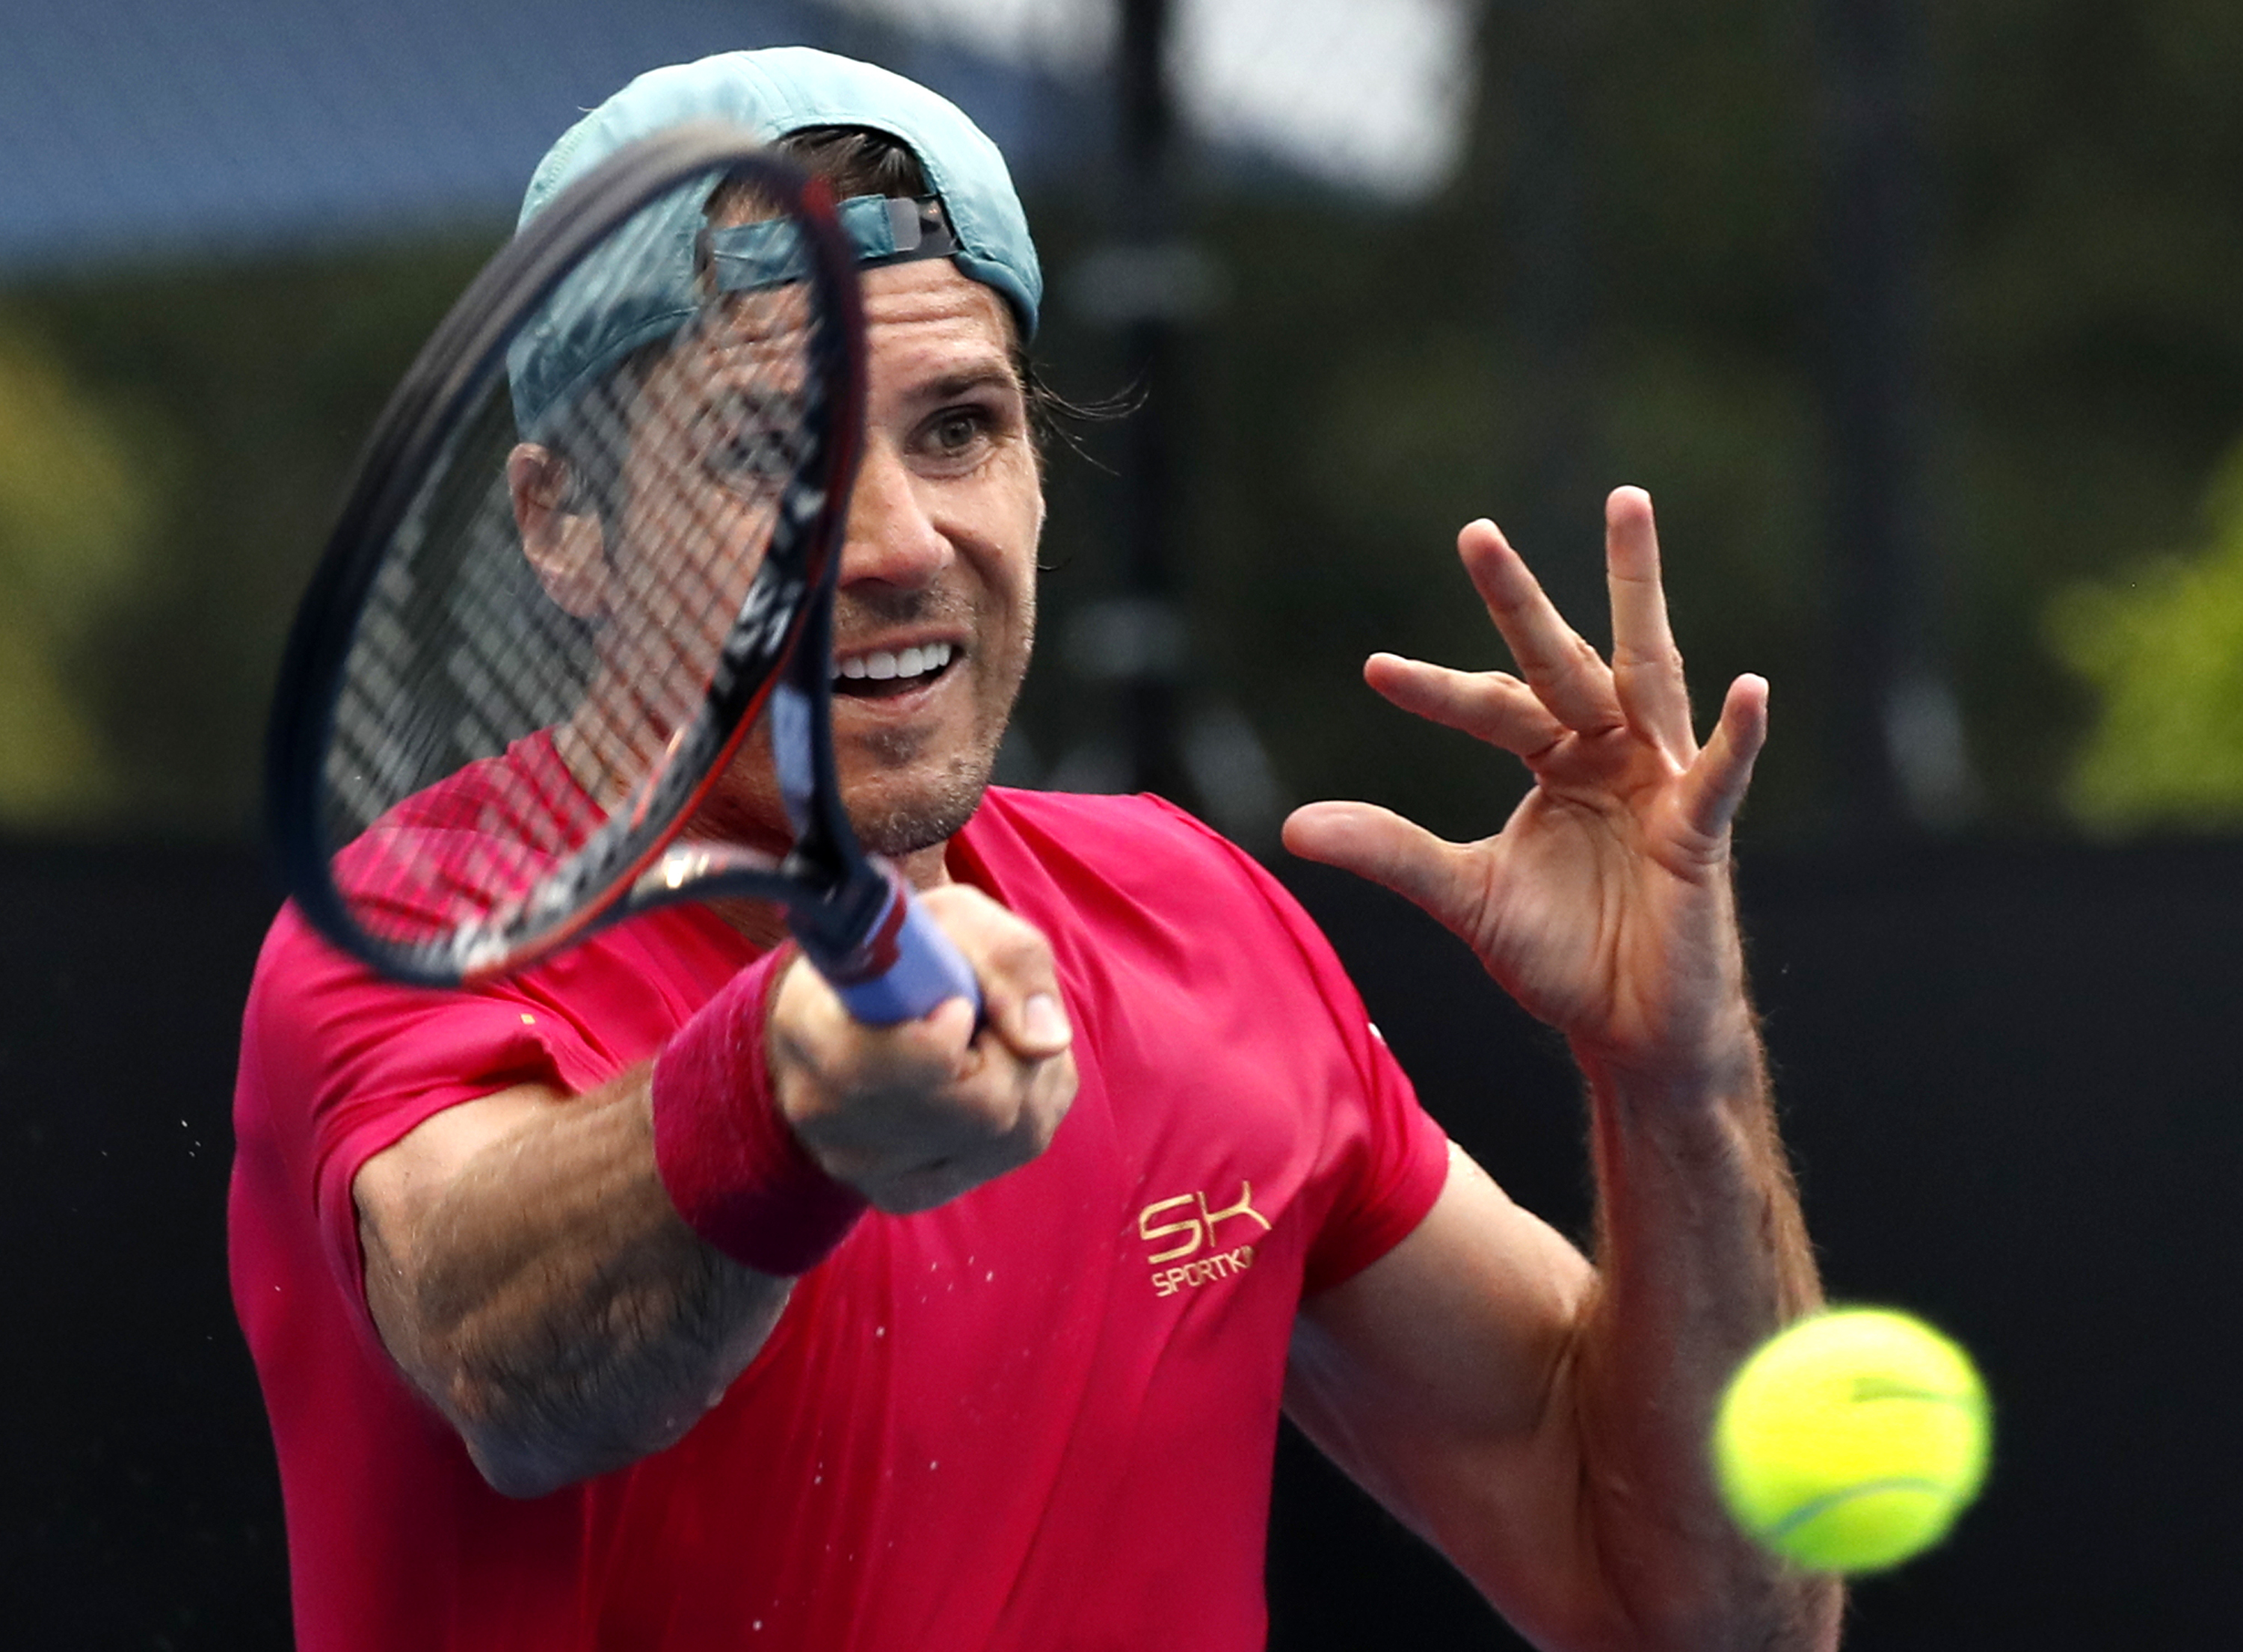 Germany's Tommy Haas makes a forehand return to France's Benoit Paire during their first round match at the Australian Open tennis championships in Melbourne, Australia, Tuesday, Jan. 17, 2017. (AP Photo/Kin Cheung)